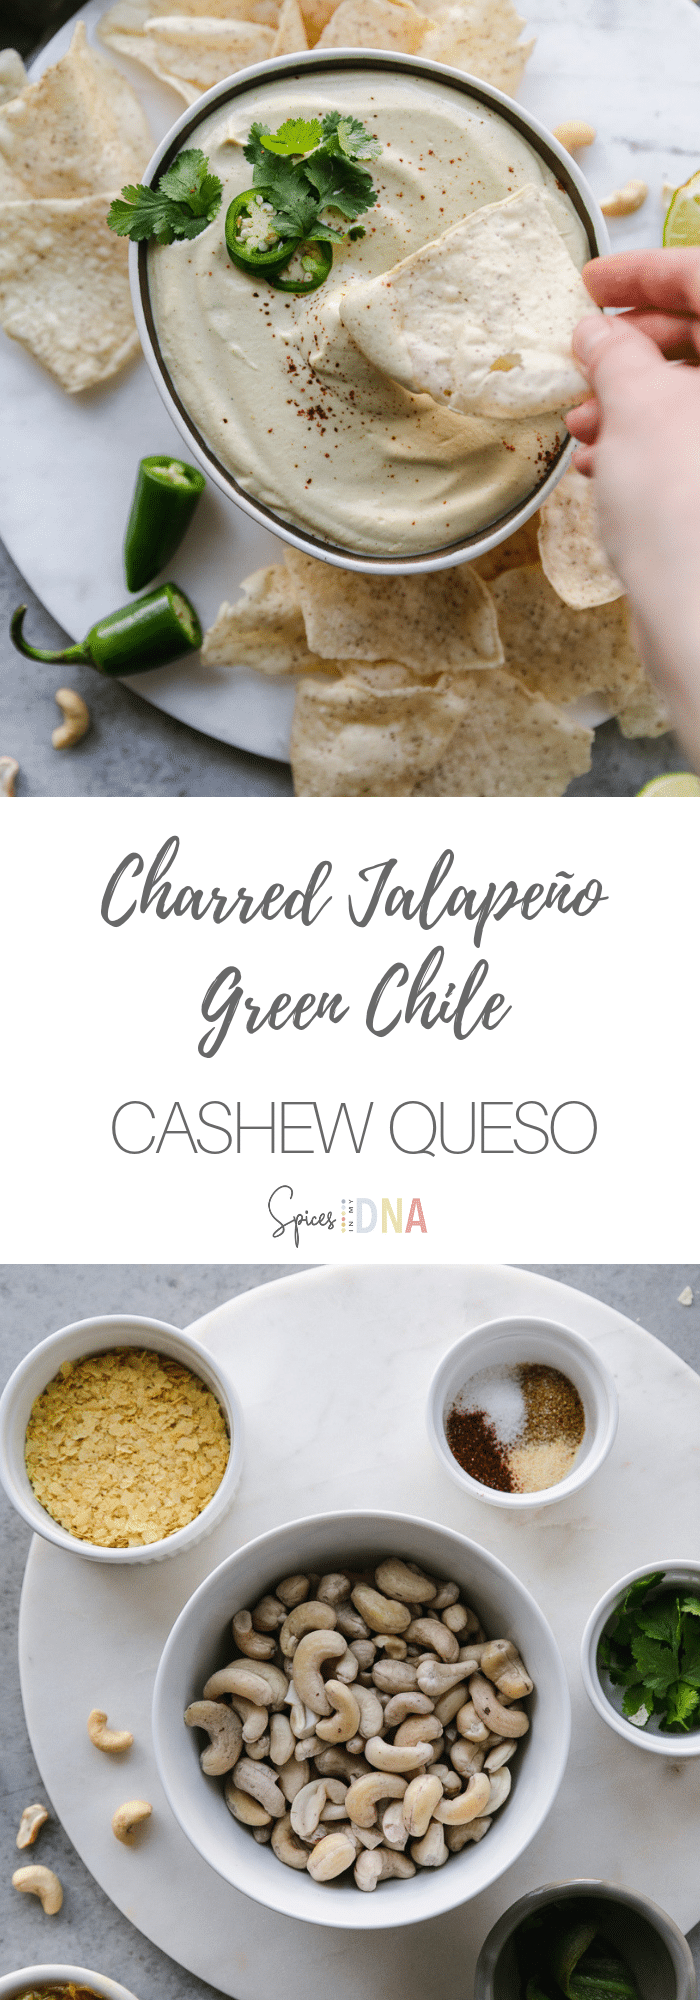 "This Charred Jalapeño Green Chile Cashew Queso is a vegan, dairy free version of your favorite cheesy dip! This one is made with charred jalapeño, diced green chiles, spices, and nutritional yeast for that ""cheesy"" flavor. It's incredibly creamy, and incredibly delicious! Perfect for snacking on with chips, or drizzled over salads and burrito bowls! #vegan #queso #plantbased #dairyfree #vegetarian"